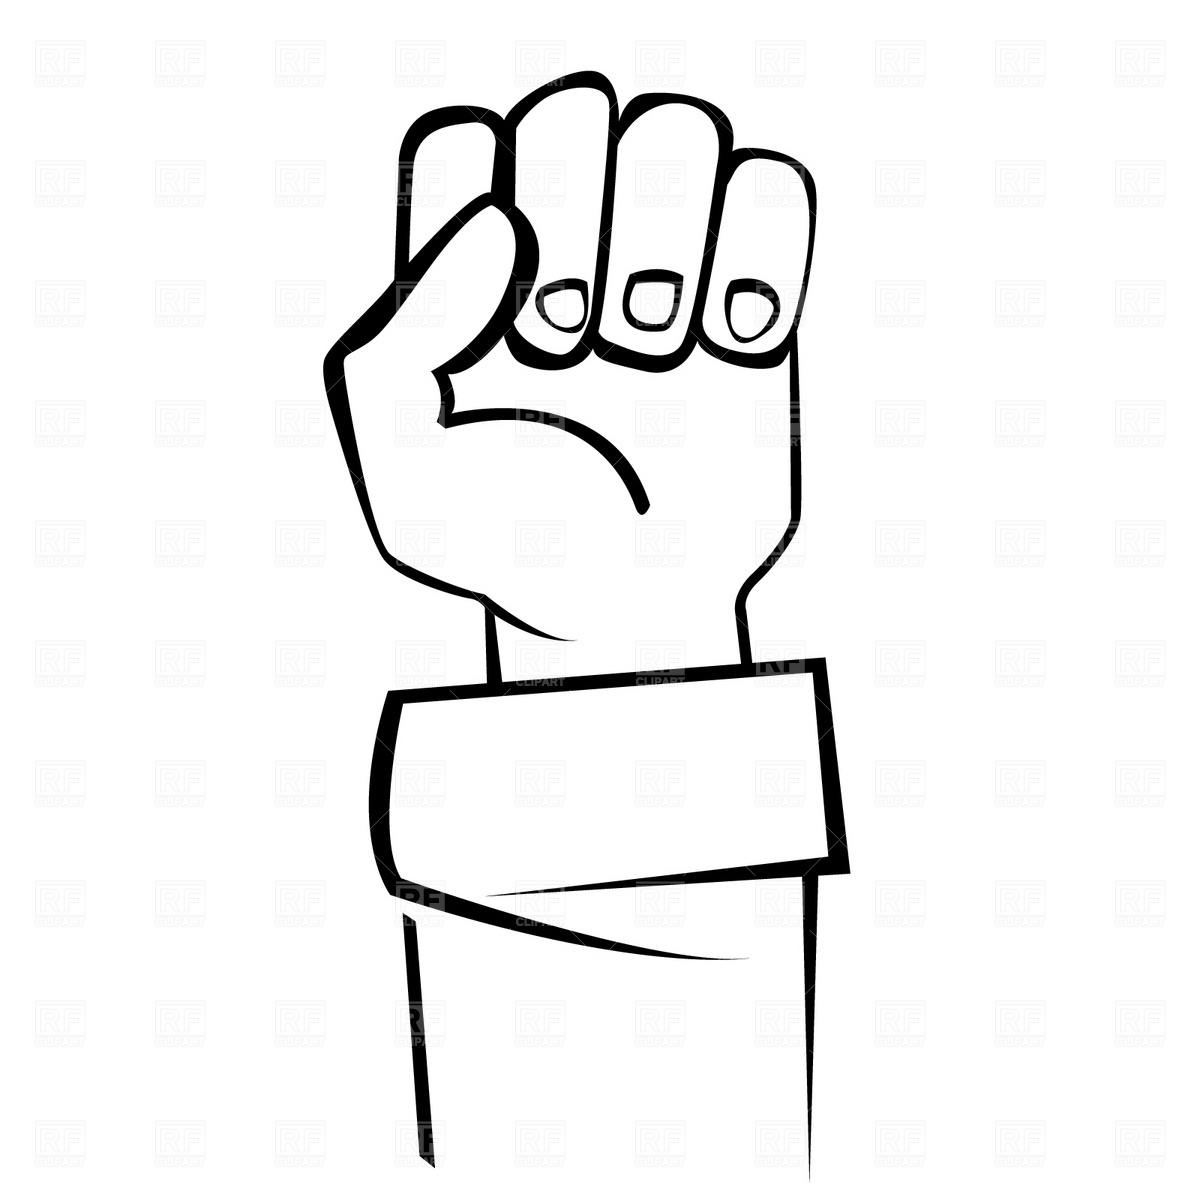 Clenched fist clipart